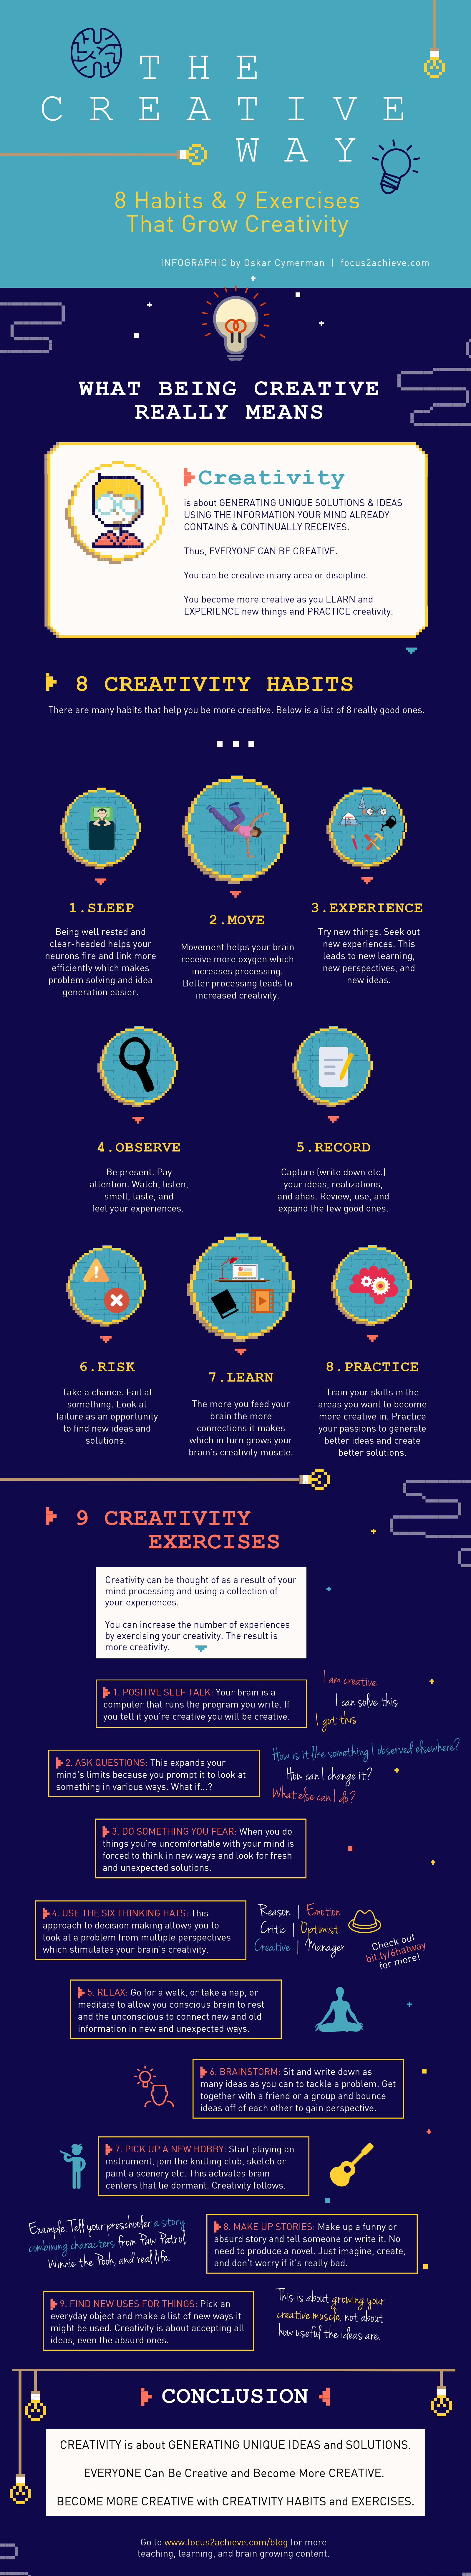 8 Habits & 9 Exercises That Grow Creativity